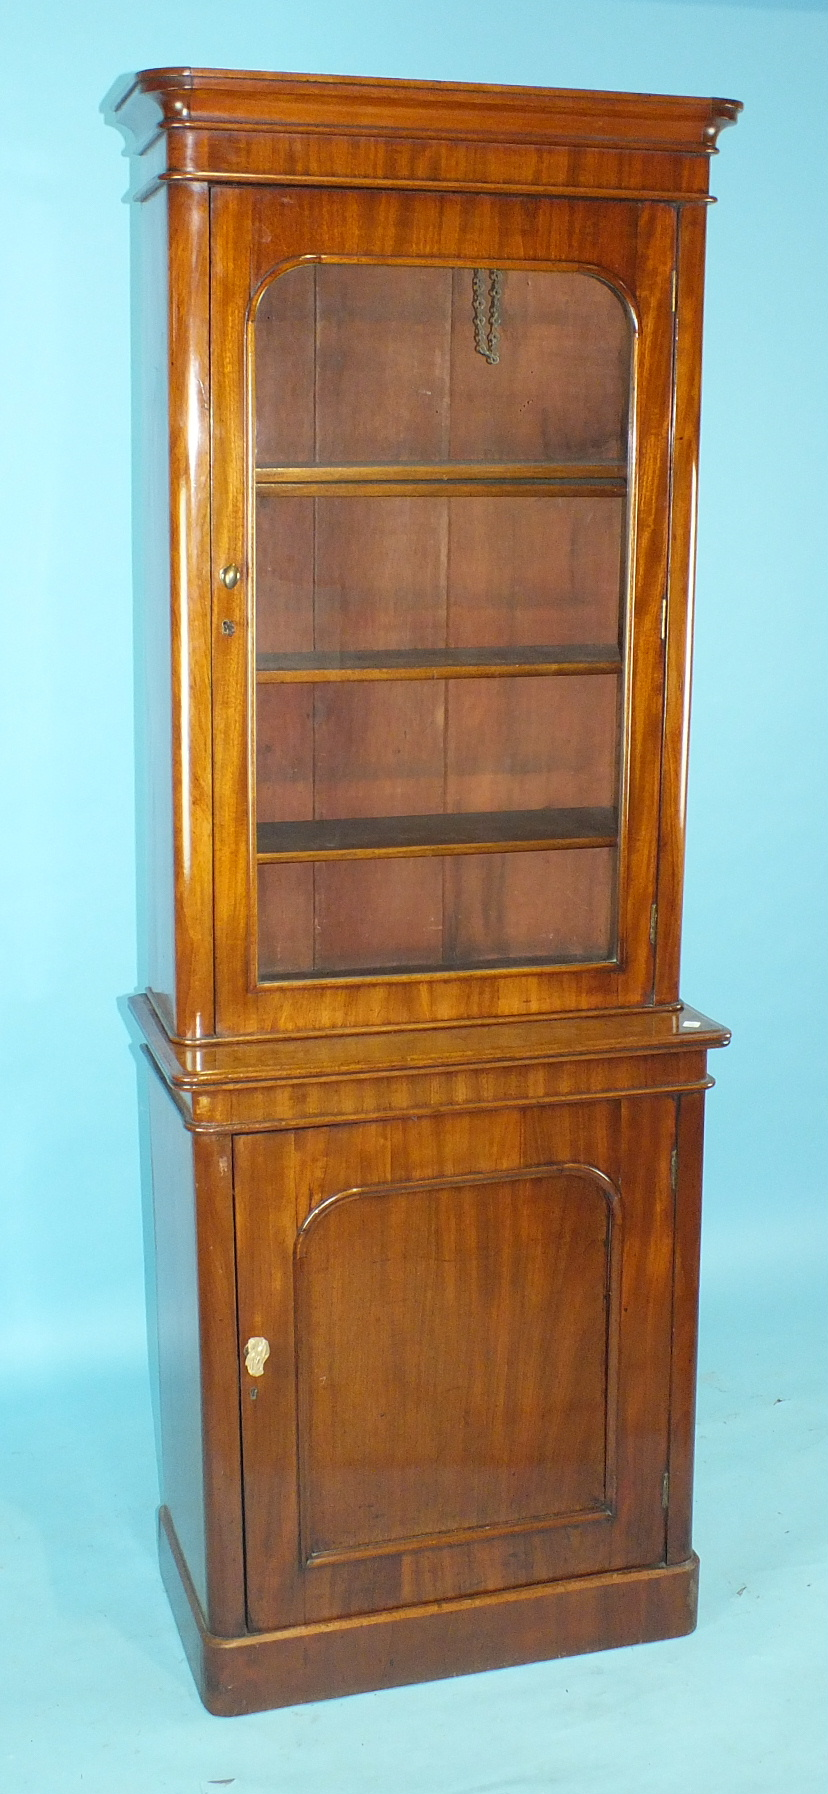 A Victorian mahogany narrow bookcase with single glazed door above a panelled door, 80cm wide, 213cm